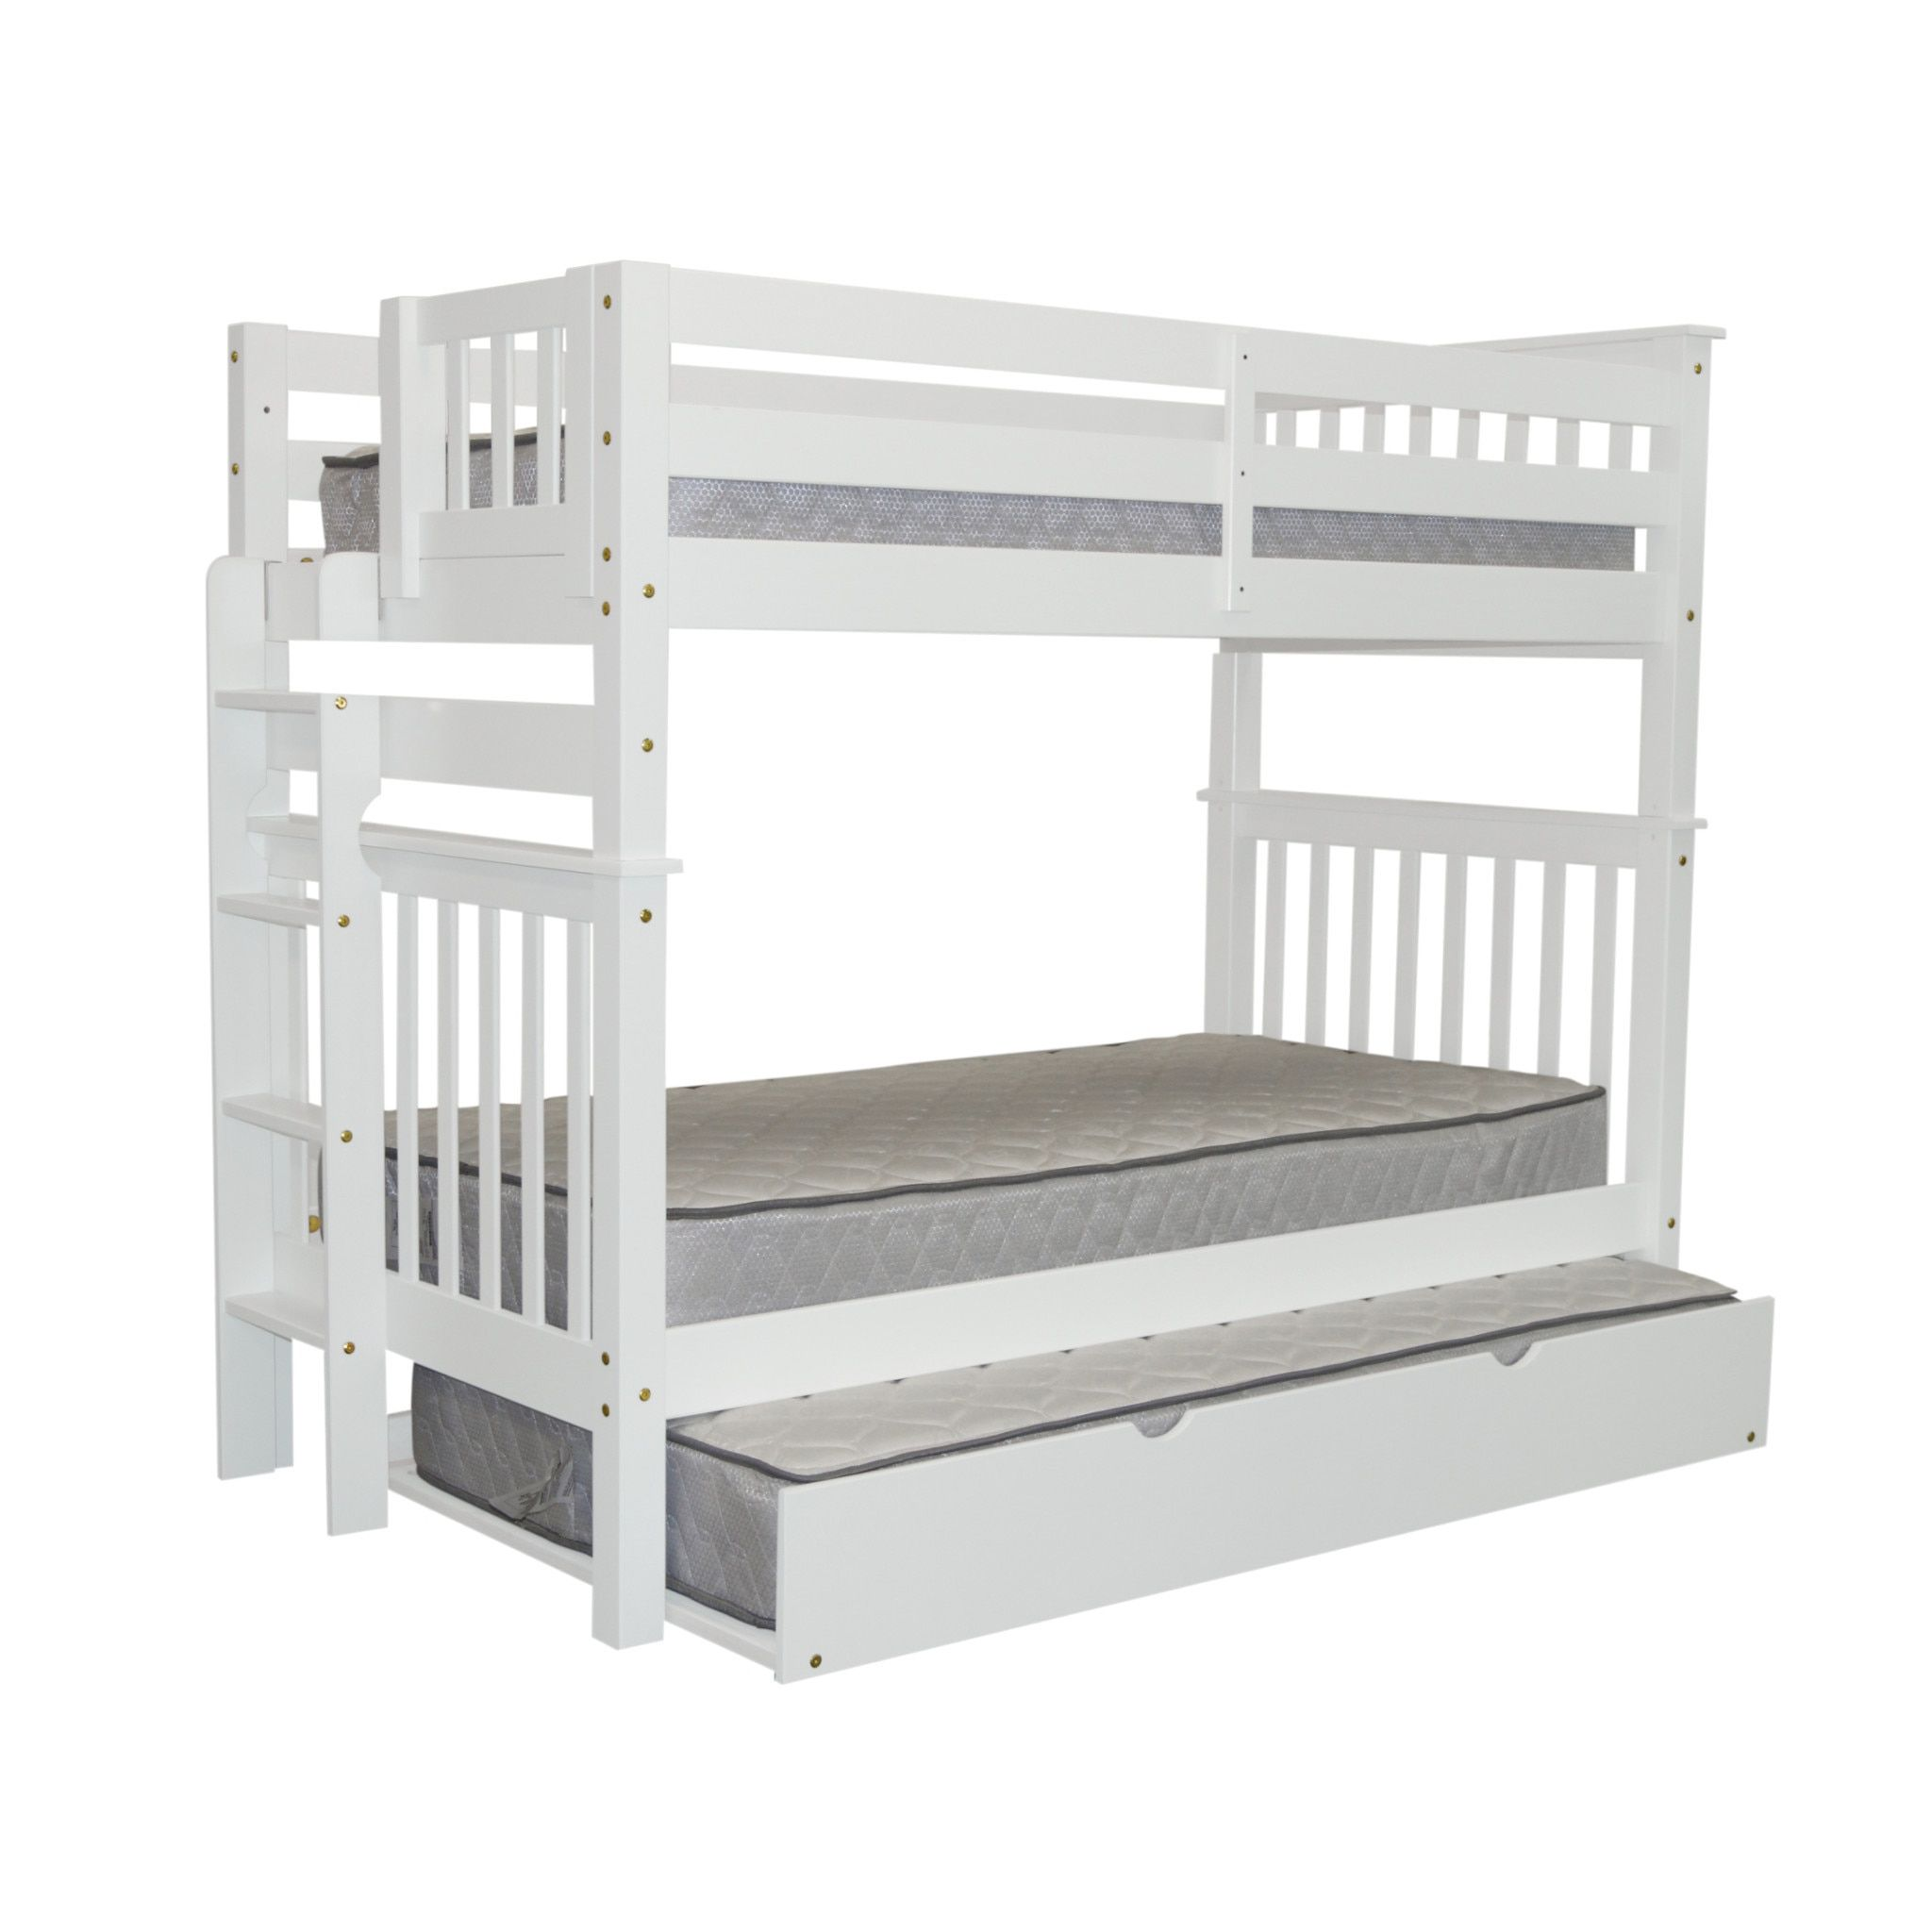 Bedz King Tall Mission Style Bunk Bed Over With End Ladder And A Trundle